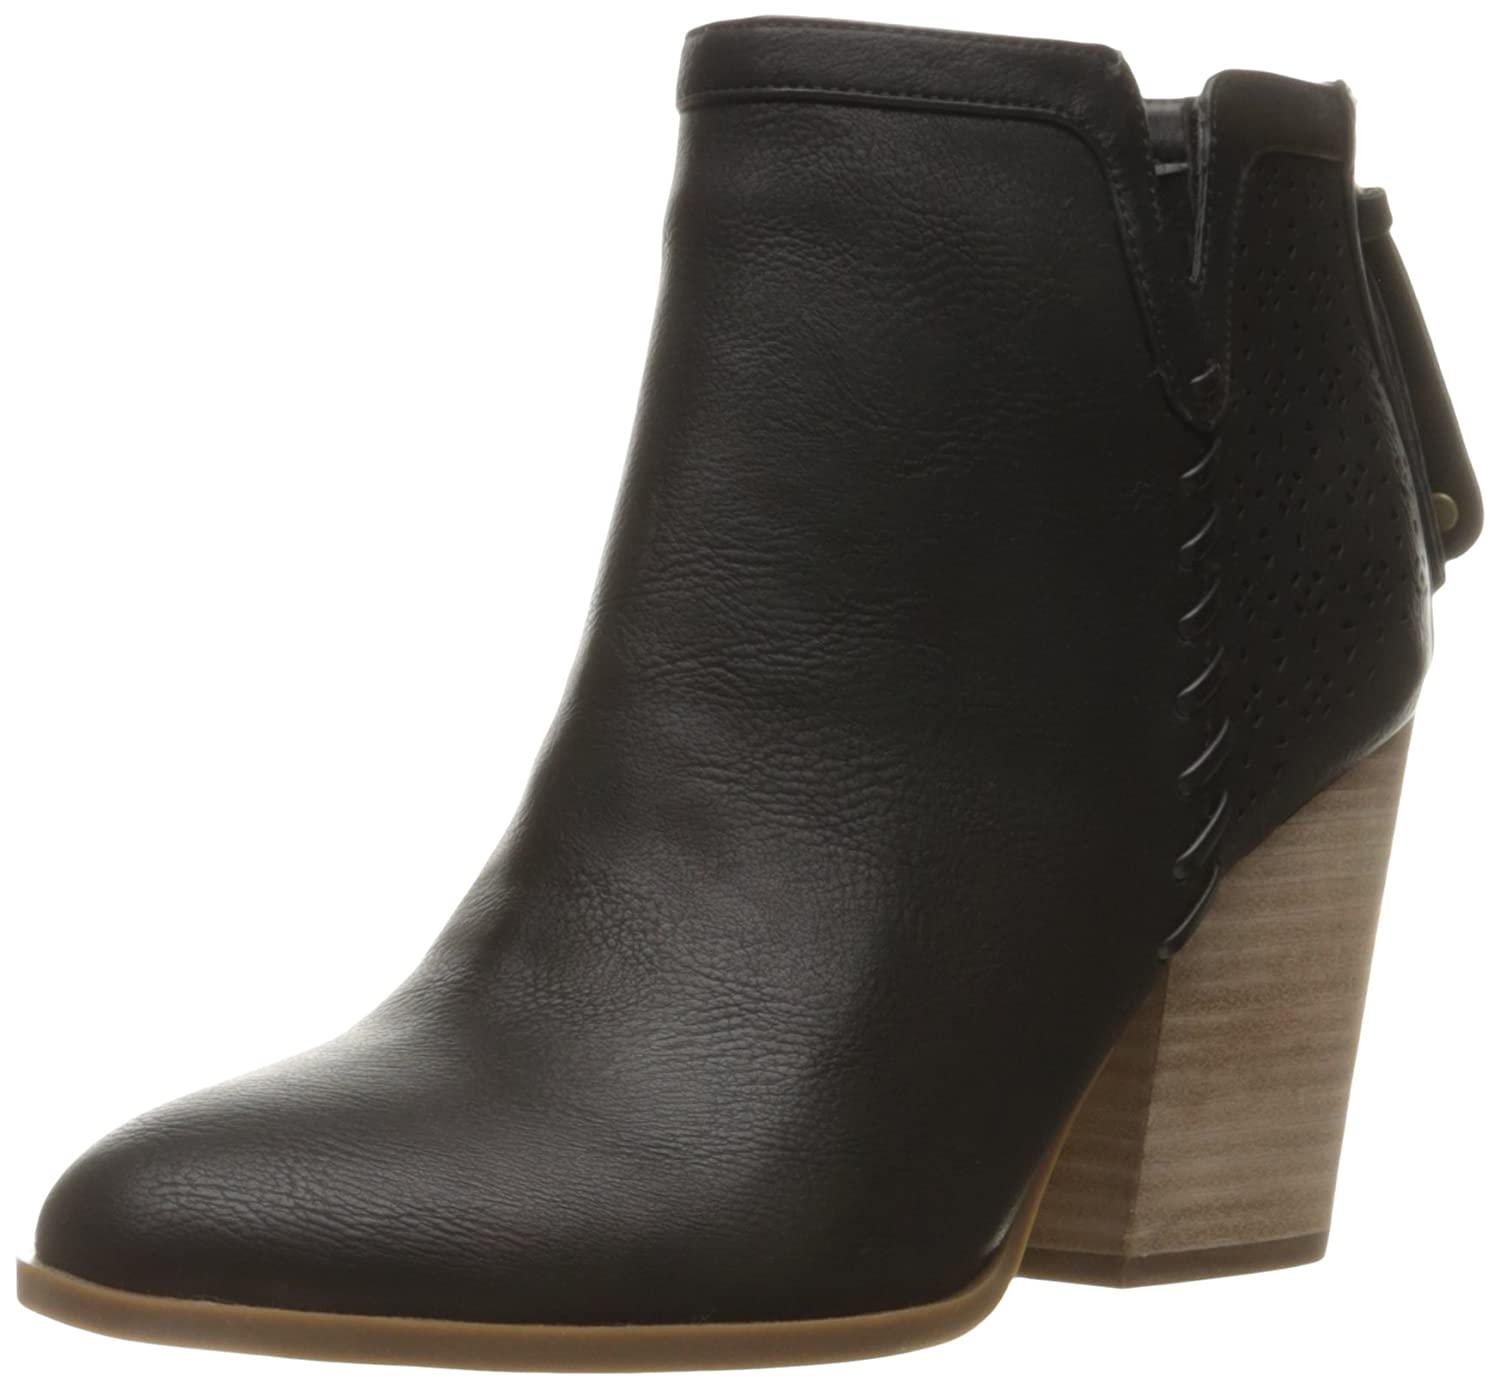 Tommy Hilfiger Women's Lyra2 Ankle Bootie B01LWPEWF6 8.5 B(M) US|Black